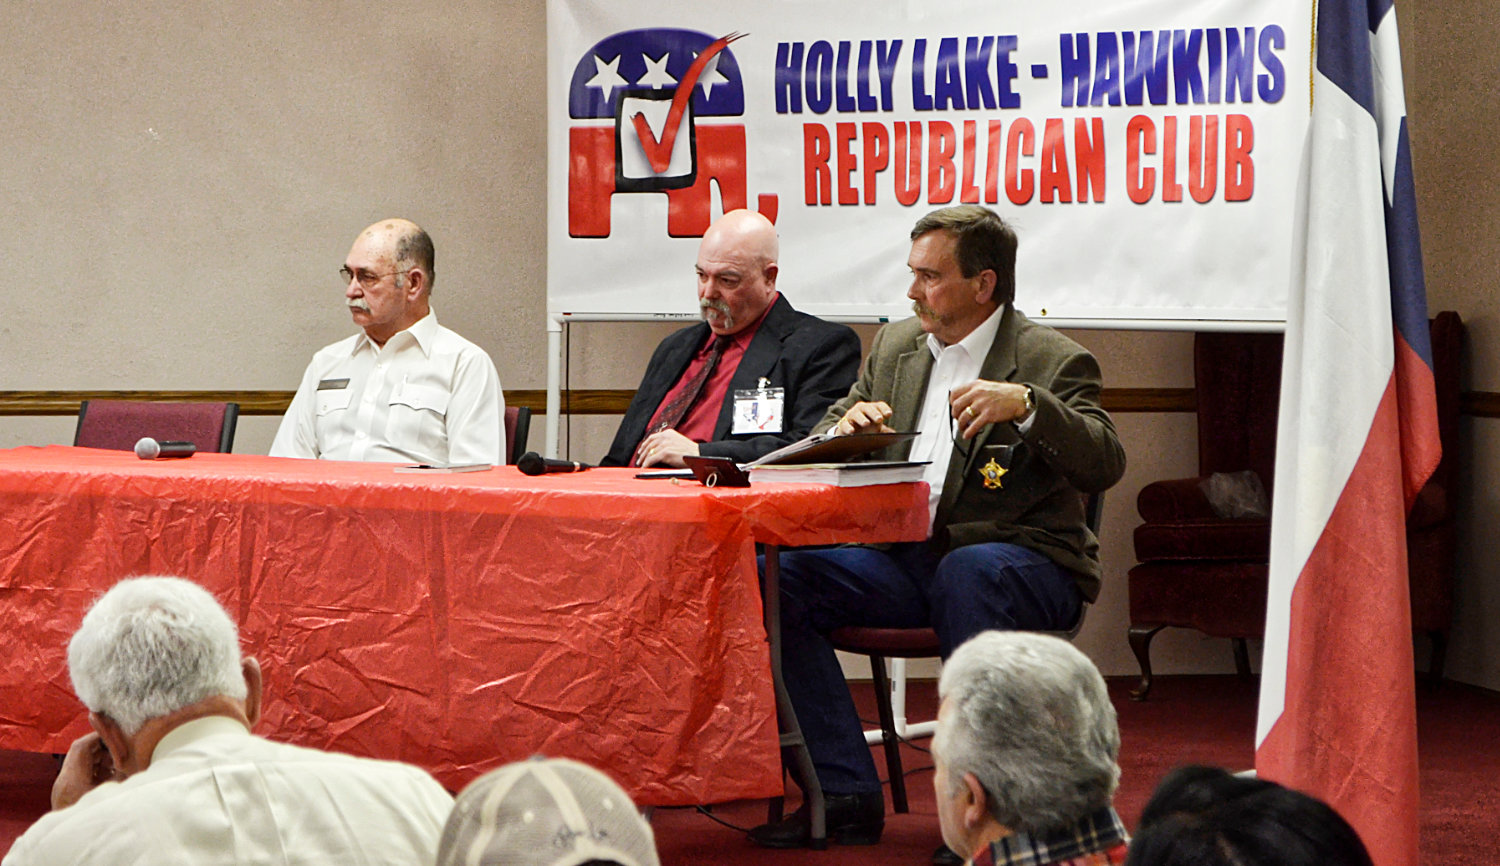 Wood County sheriff's candidates, from left, James Schaffner, Kelly Cole and Tom Castloo field questions during a forum at Holly Lake Ranch Monday. Callie Lawrence was unable to attend.